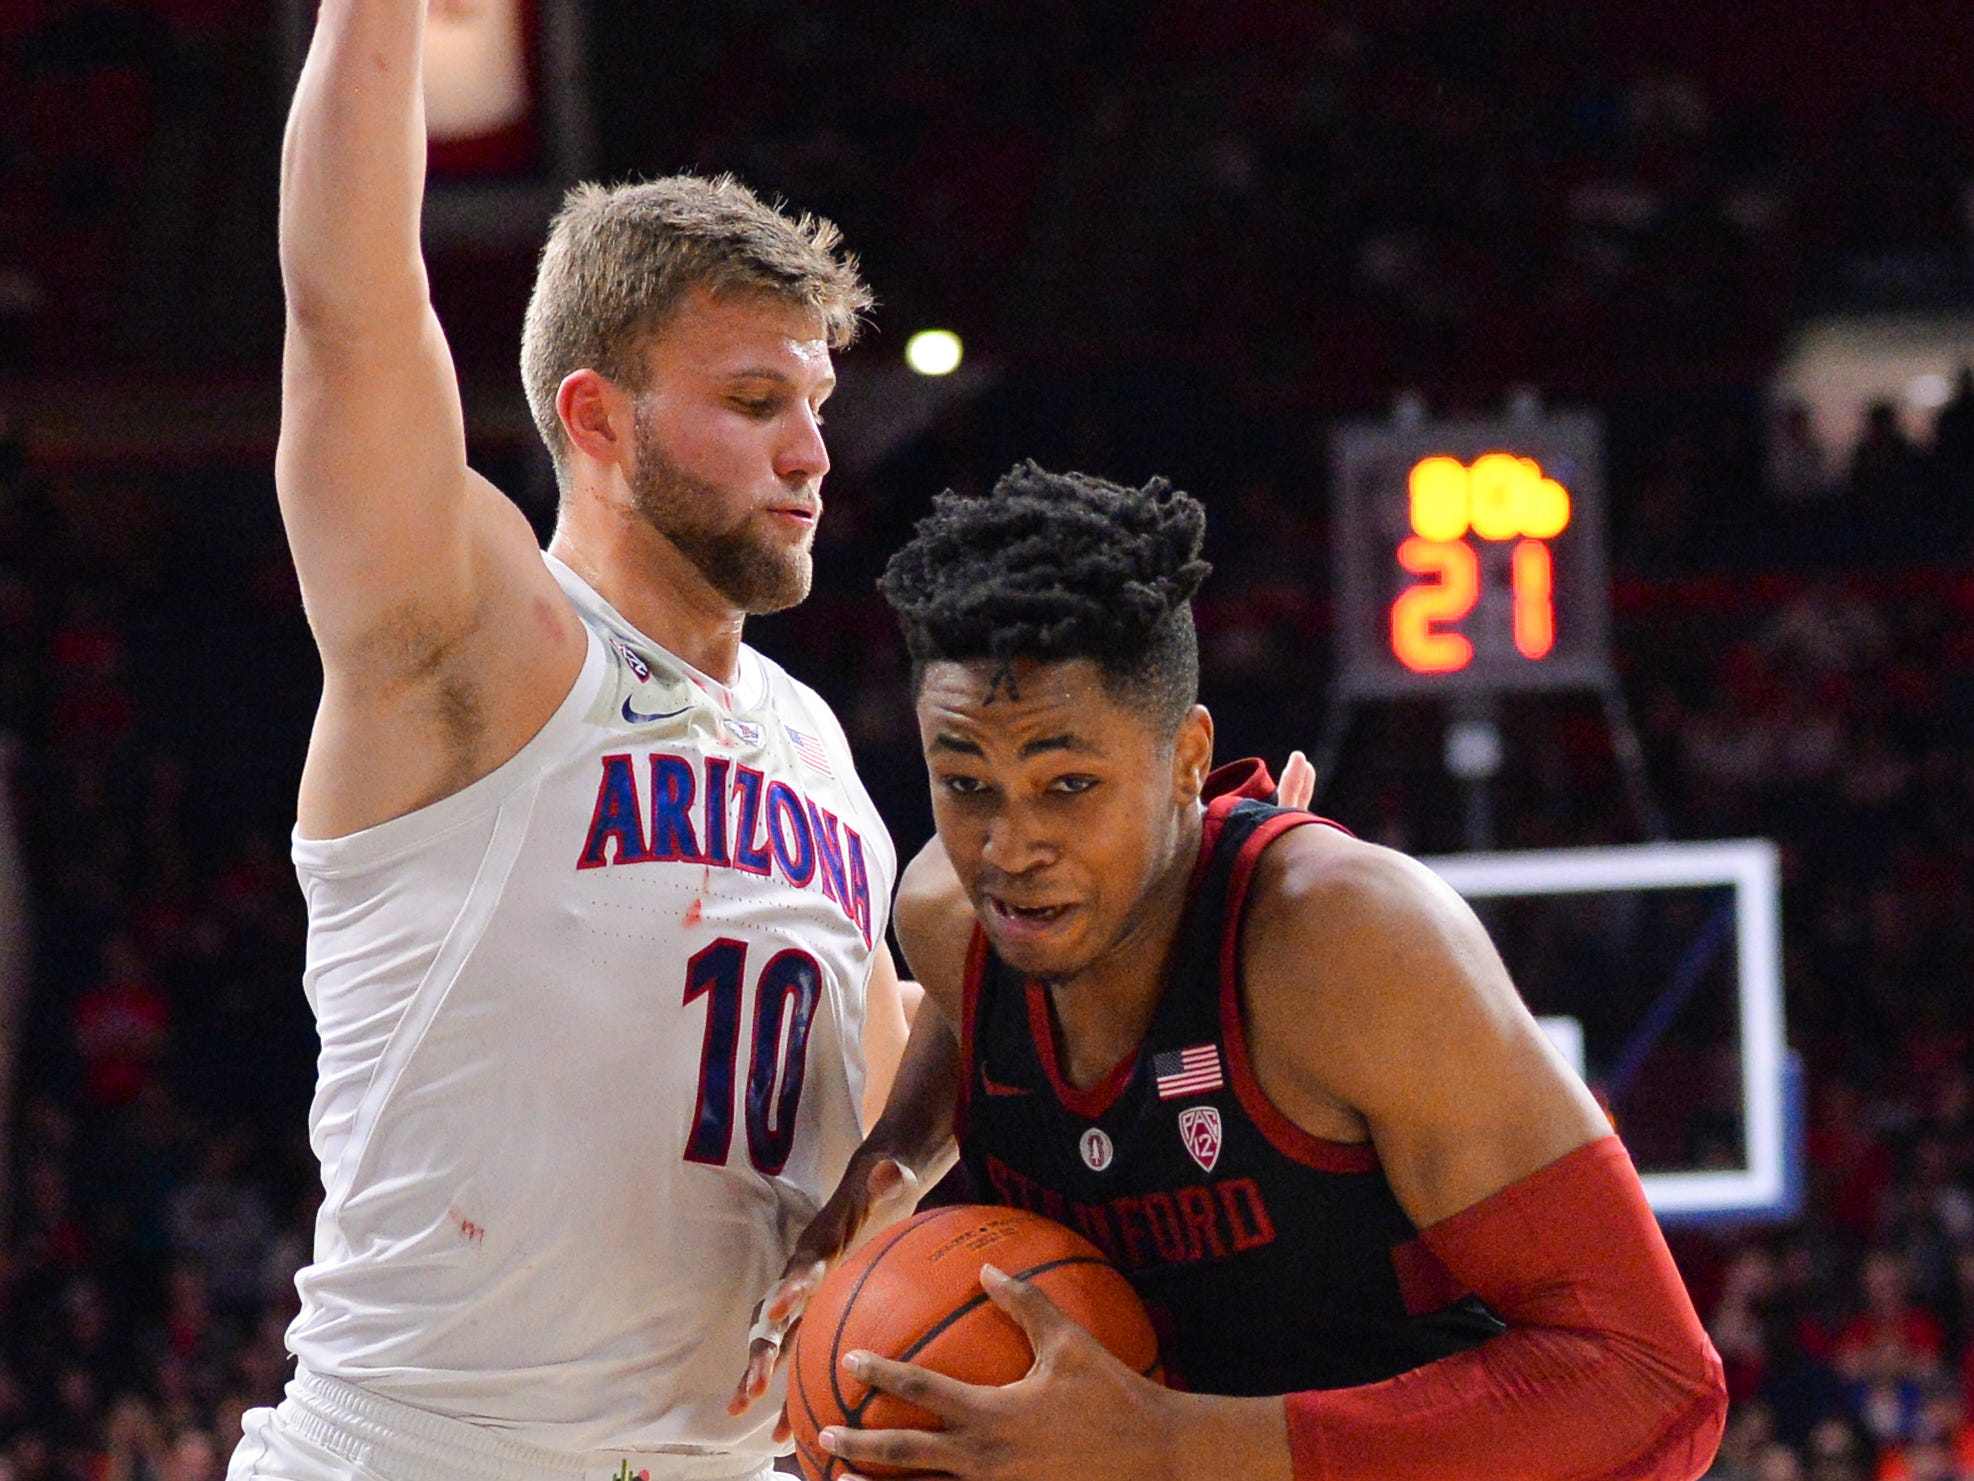 Feb 24, 2019: Stanford Cardinal forward KZ Okpala (0) drives to the basket against Arizona Wildcats forward Ryan Luther (10) during the first half at McKale Center.